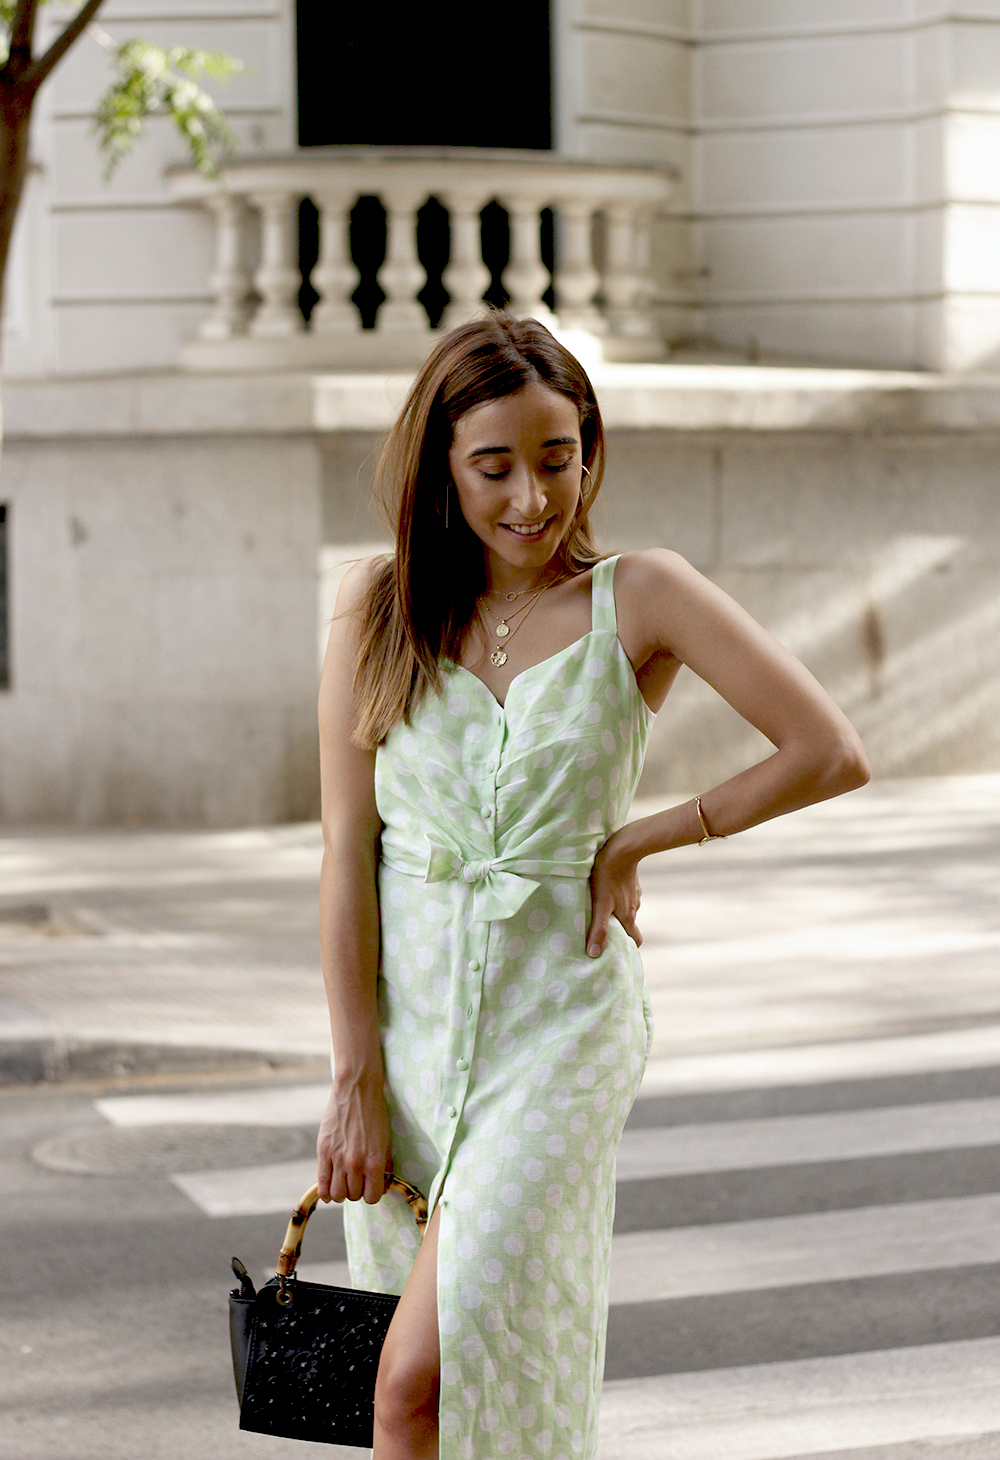 linen dress with polka dots uterqüe street style summer outfit 20197